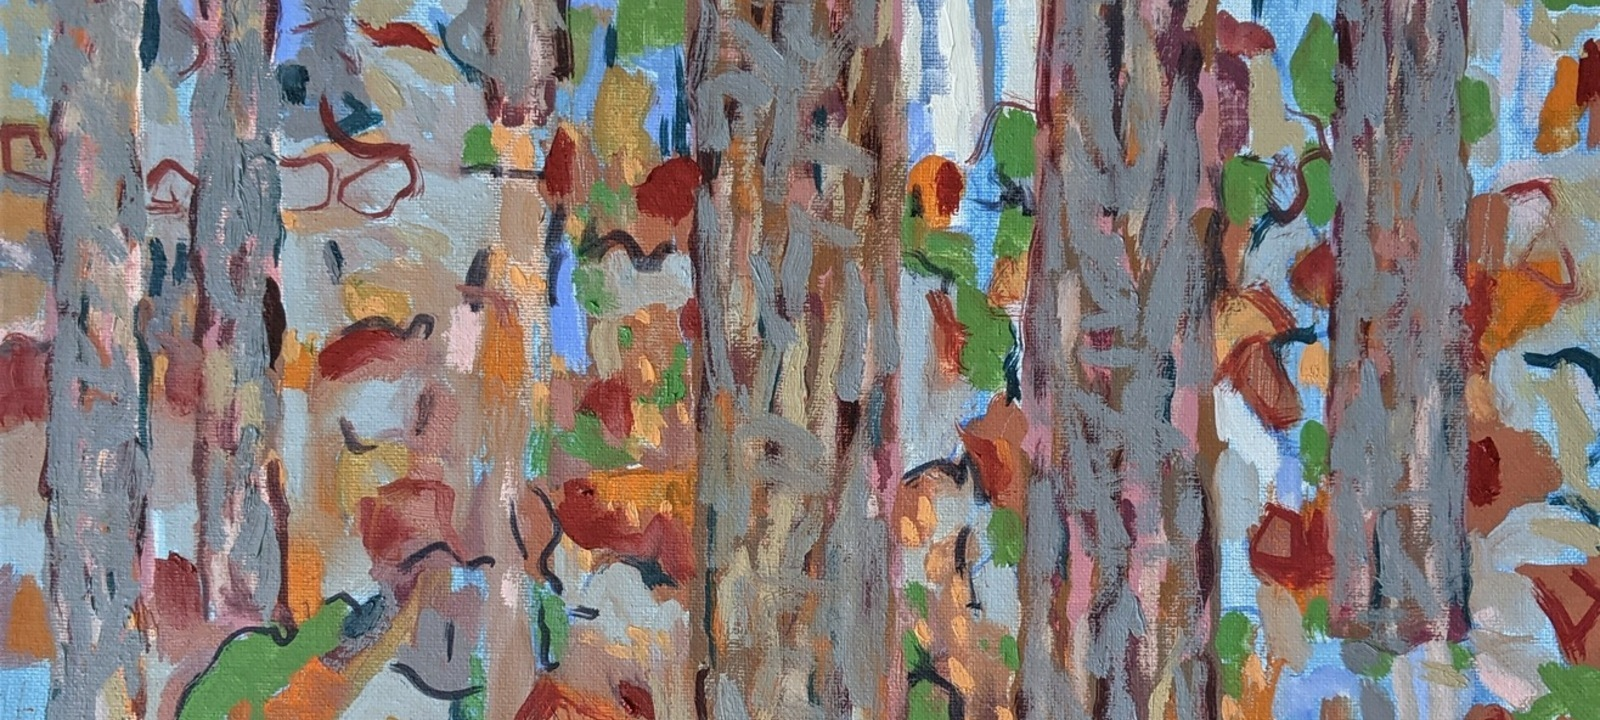 Sheryl Southwick's 'Woodland Sketches' now on view